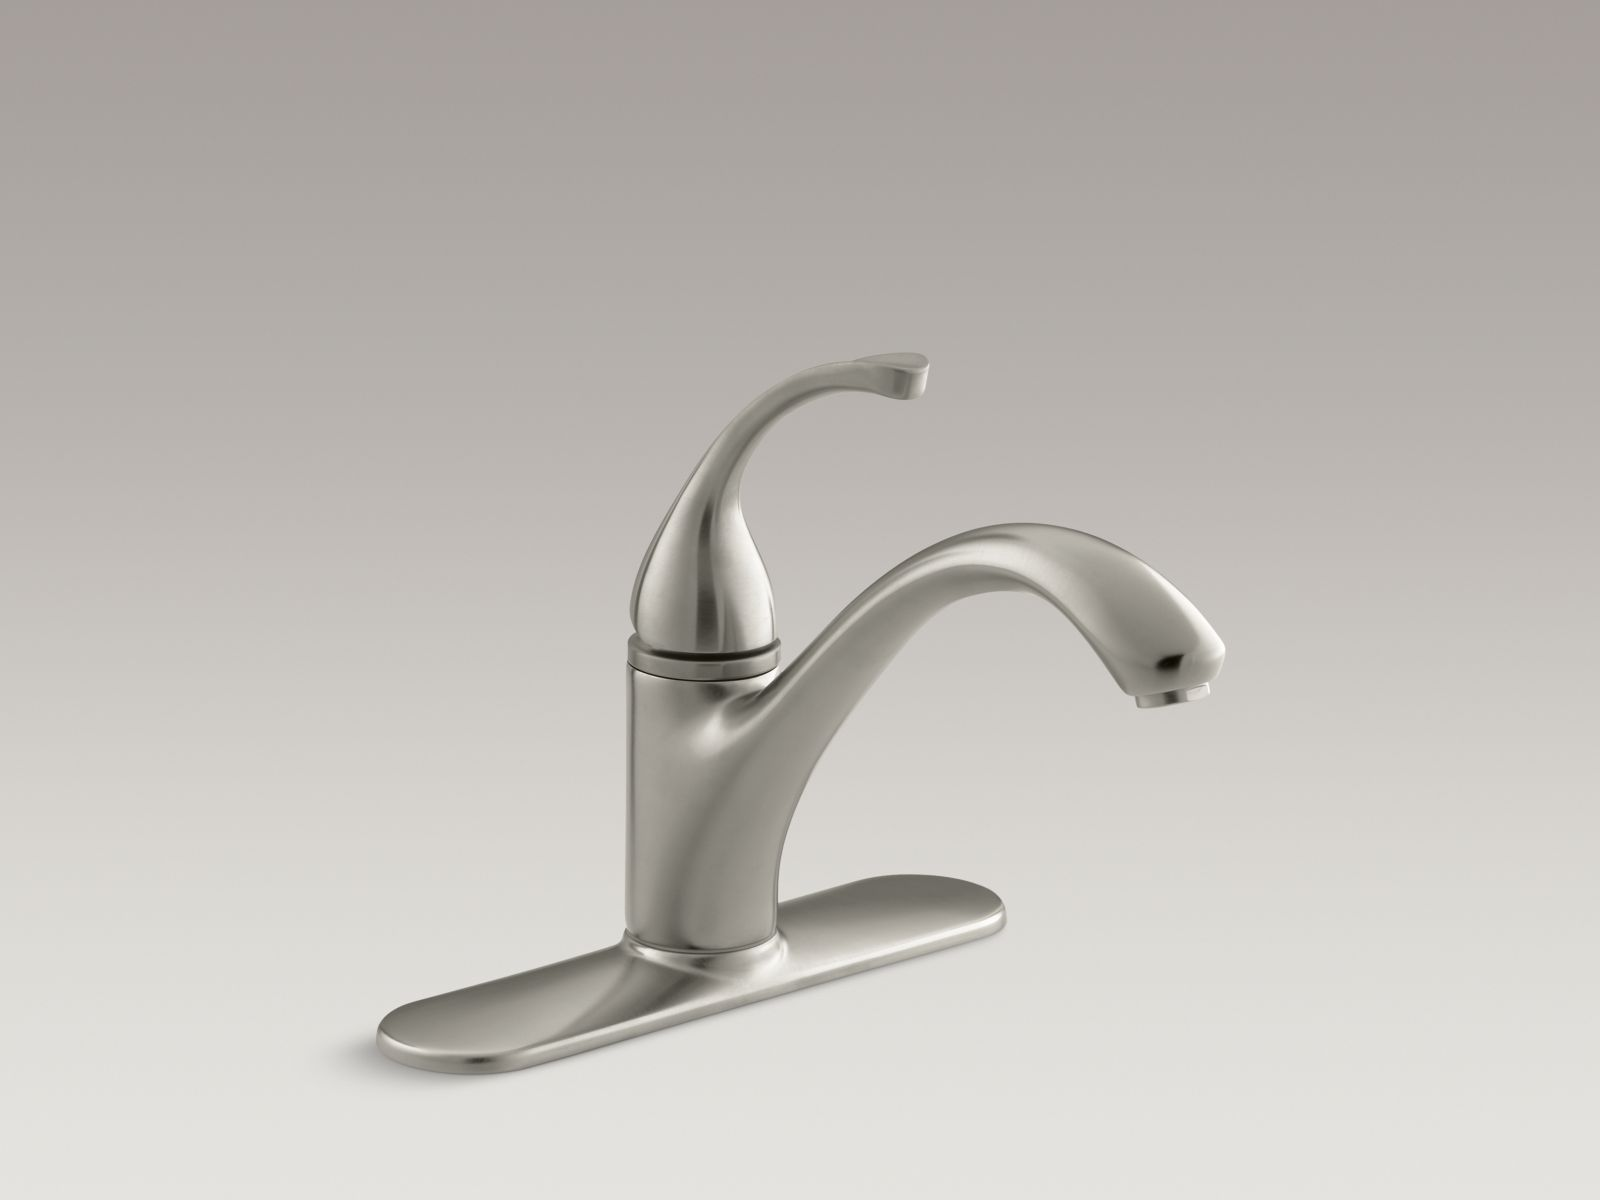 "Kohler K-10411-BN Forté Single-handle Kitchen Faucet with 9-1/16"" Spout and Escutcheon Vibrant Brushed Nickel"